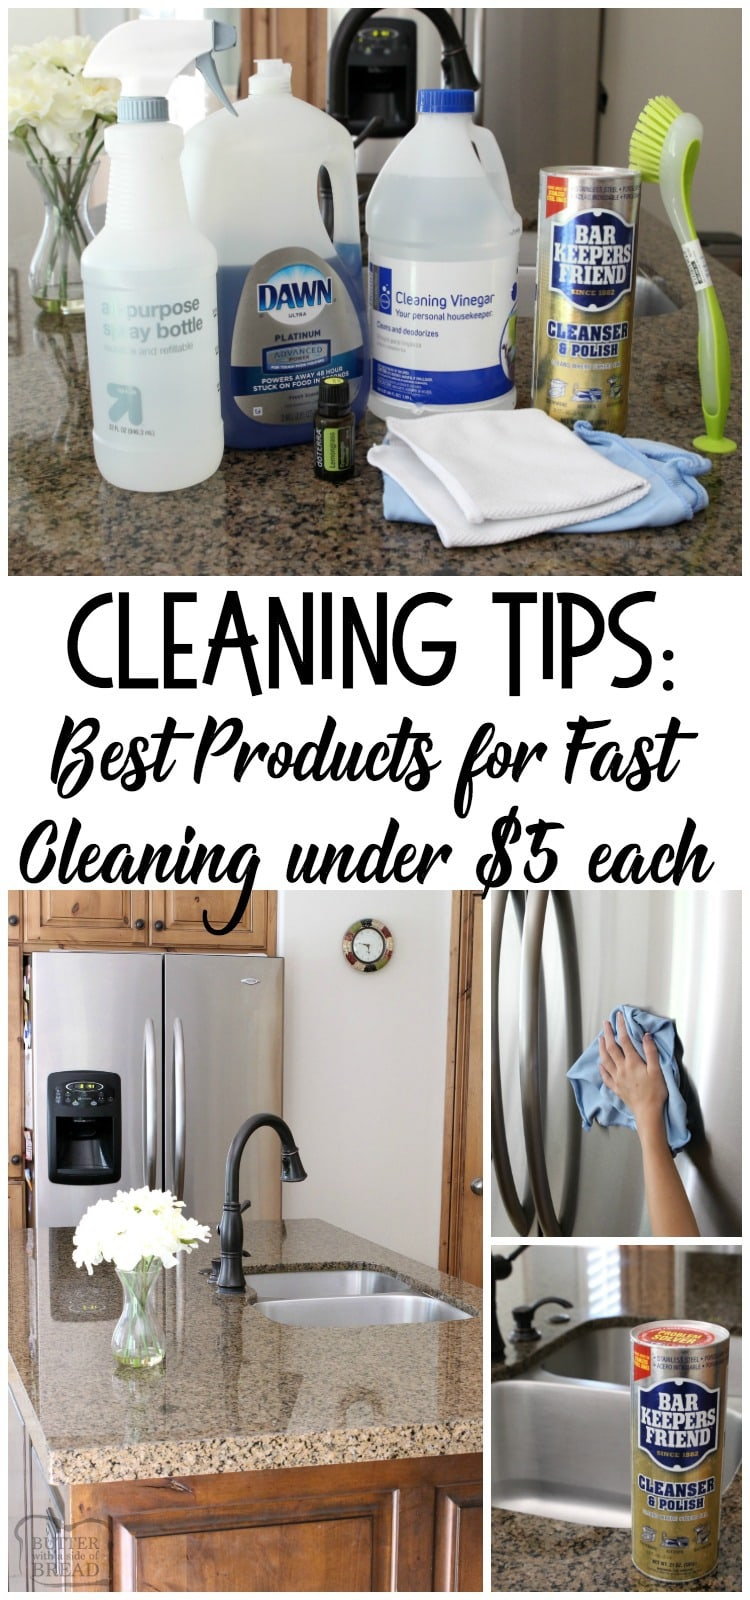 CLEANING TIPS: BEST PRODUCTS For FAST CLEANING